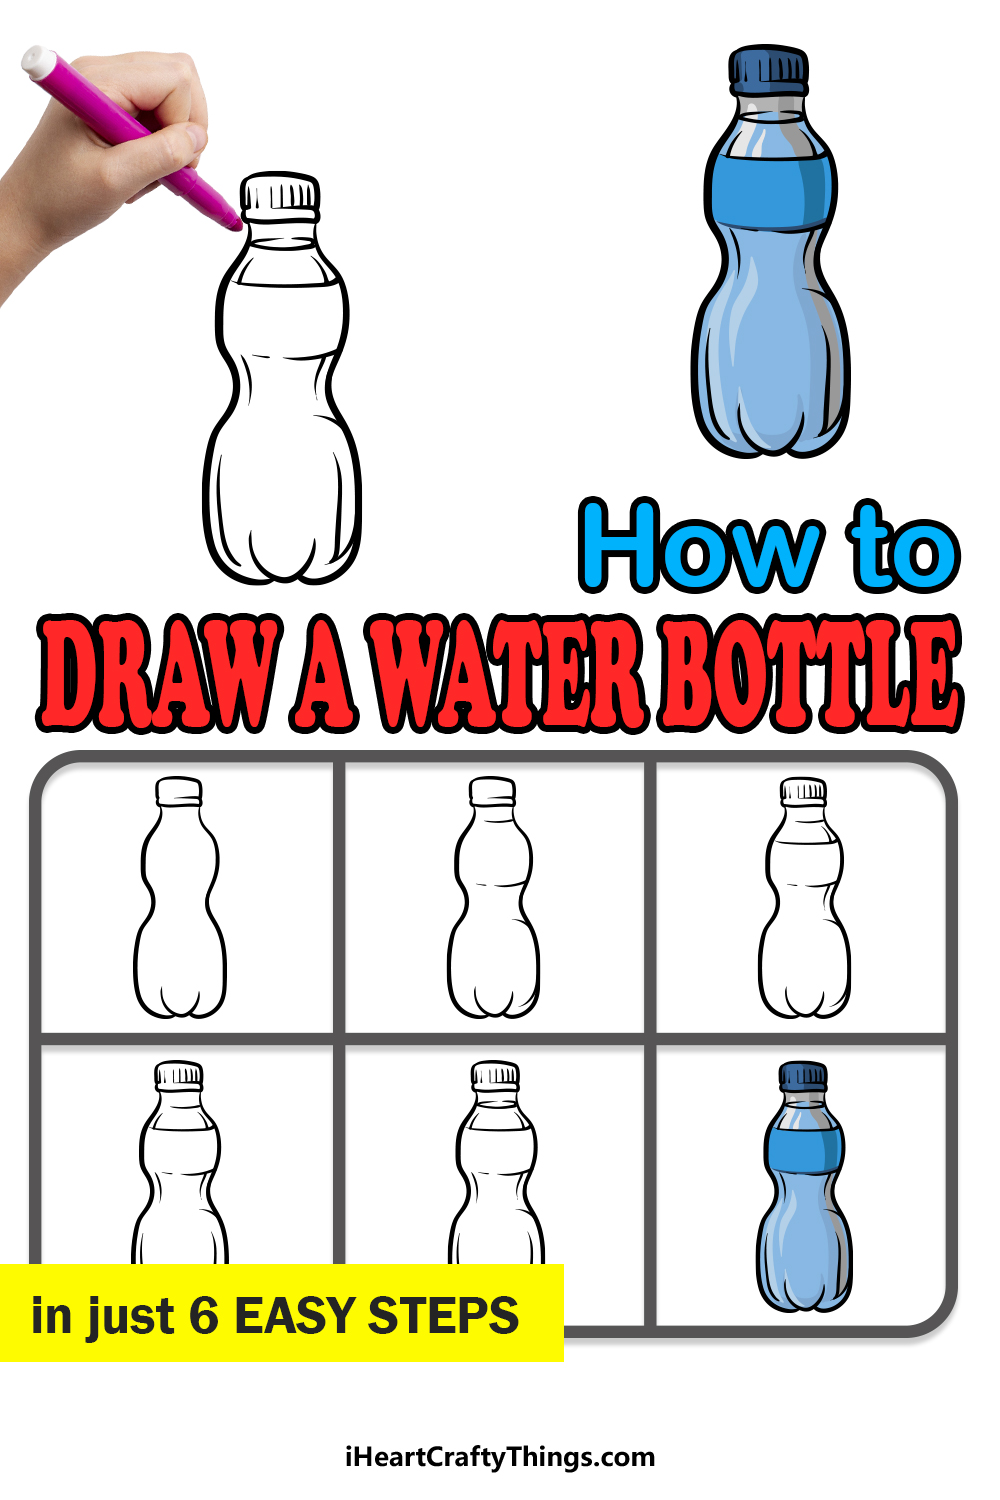 how to draw a water bottle in 6 easy steps